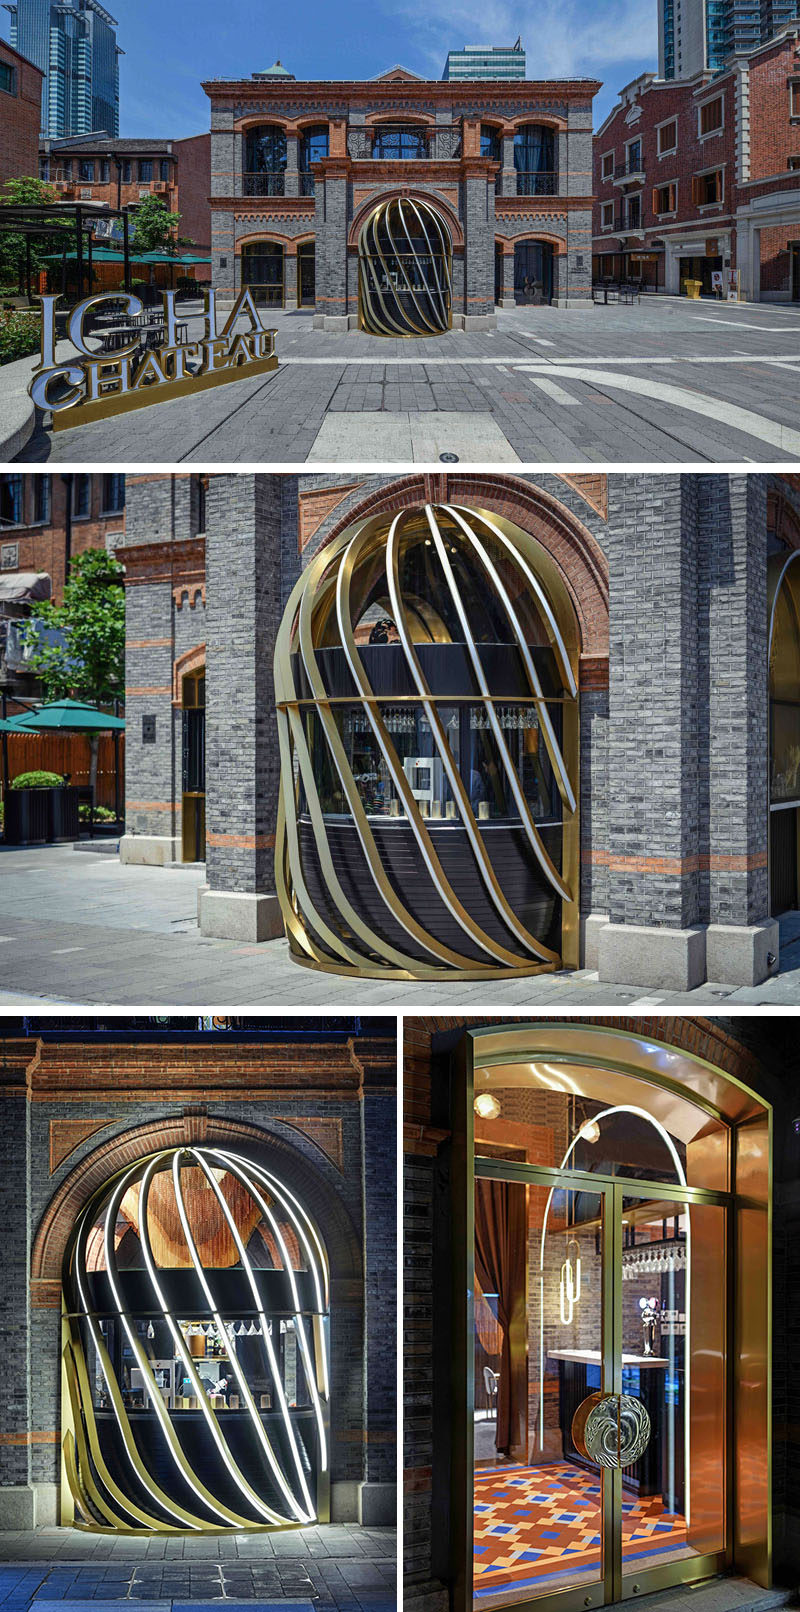 A sculptural brass cage, that lights up at night, has been integrated into the facade of the building and provides a glimpse of the modern restaurant within. #Restaurant #Building #Design